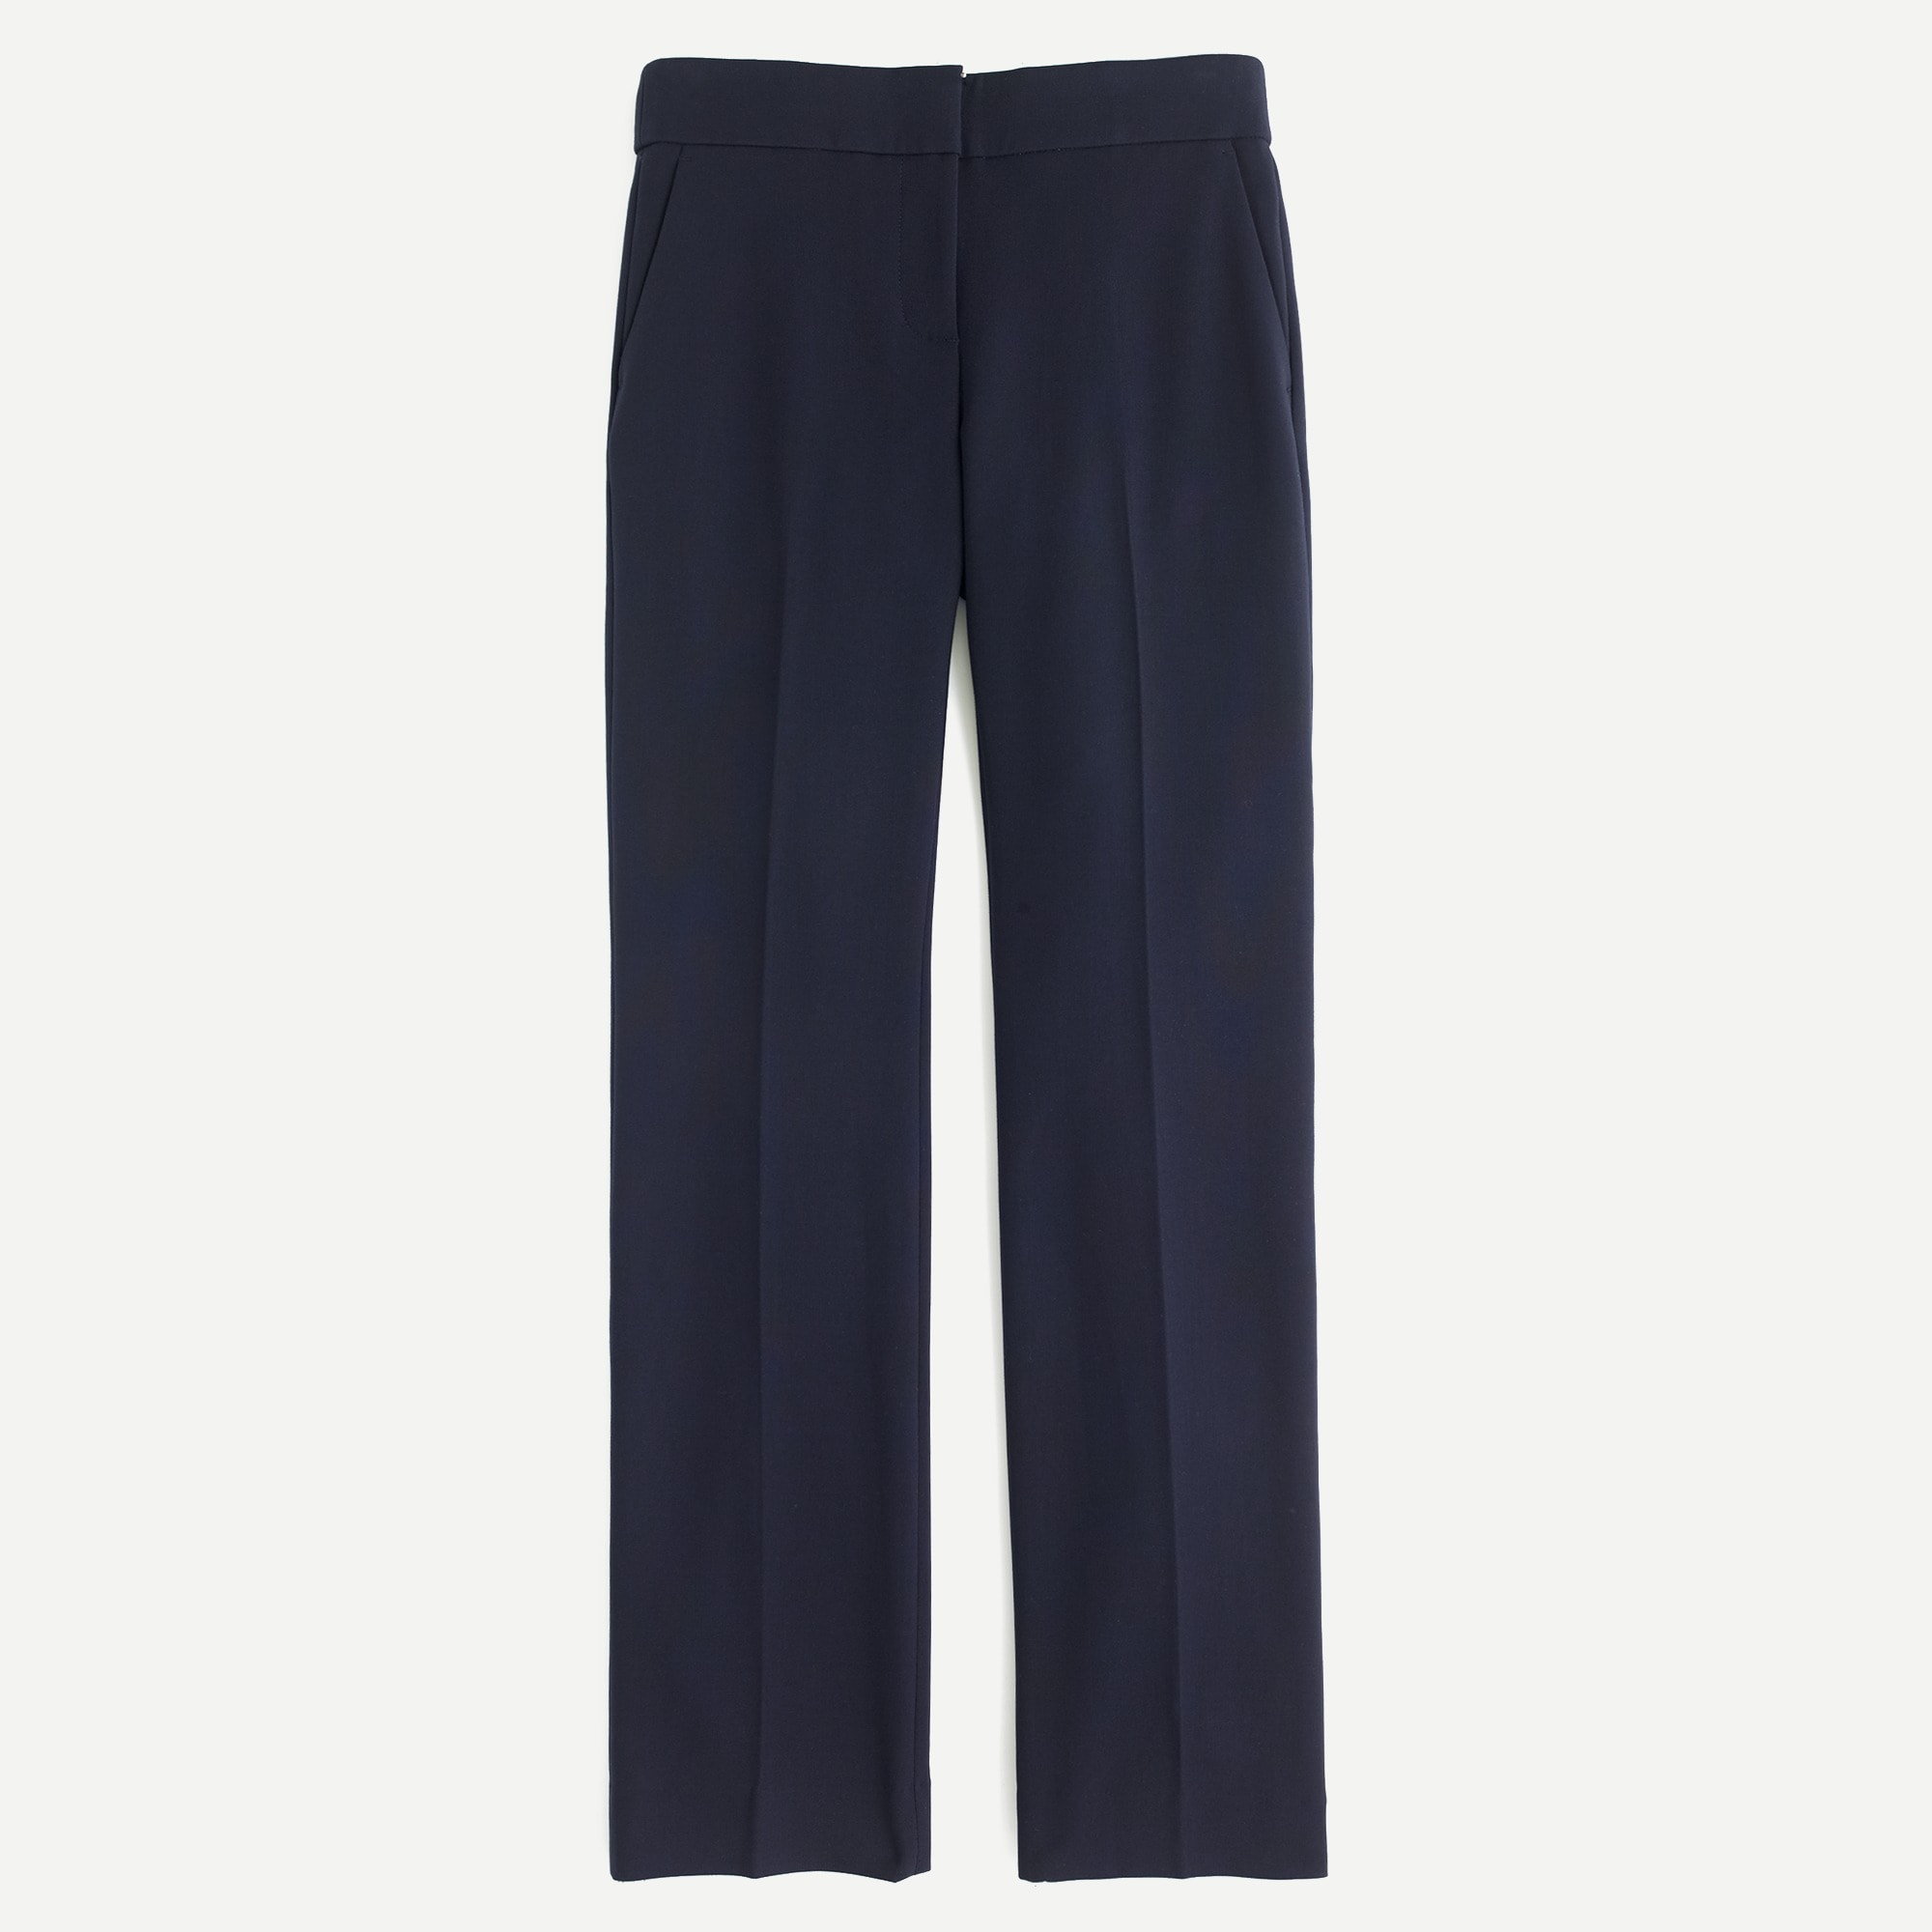 women's petite edie full-length trouser in four-season stretch - women's pants